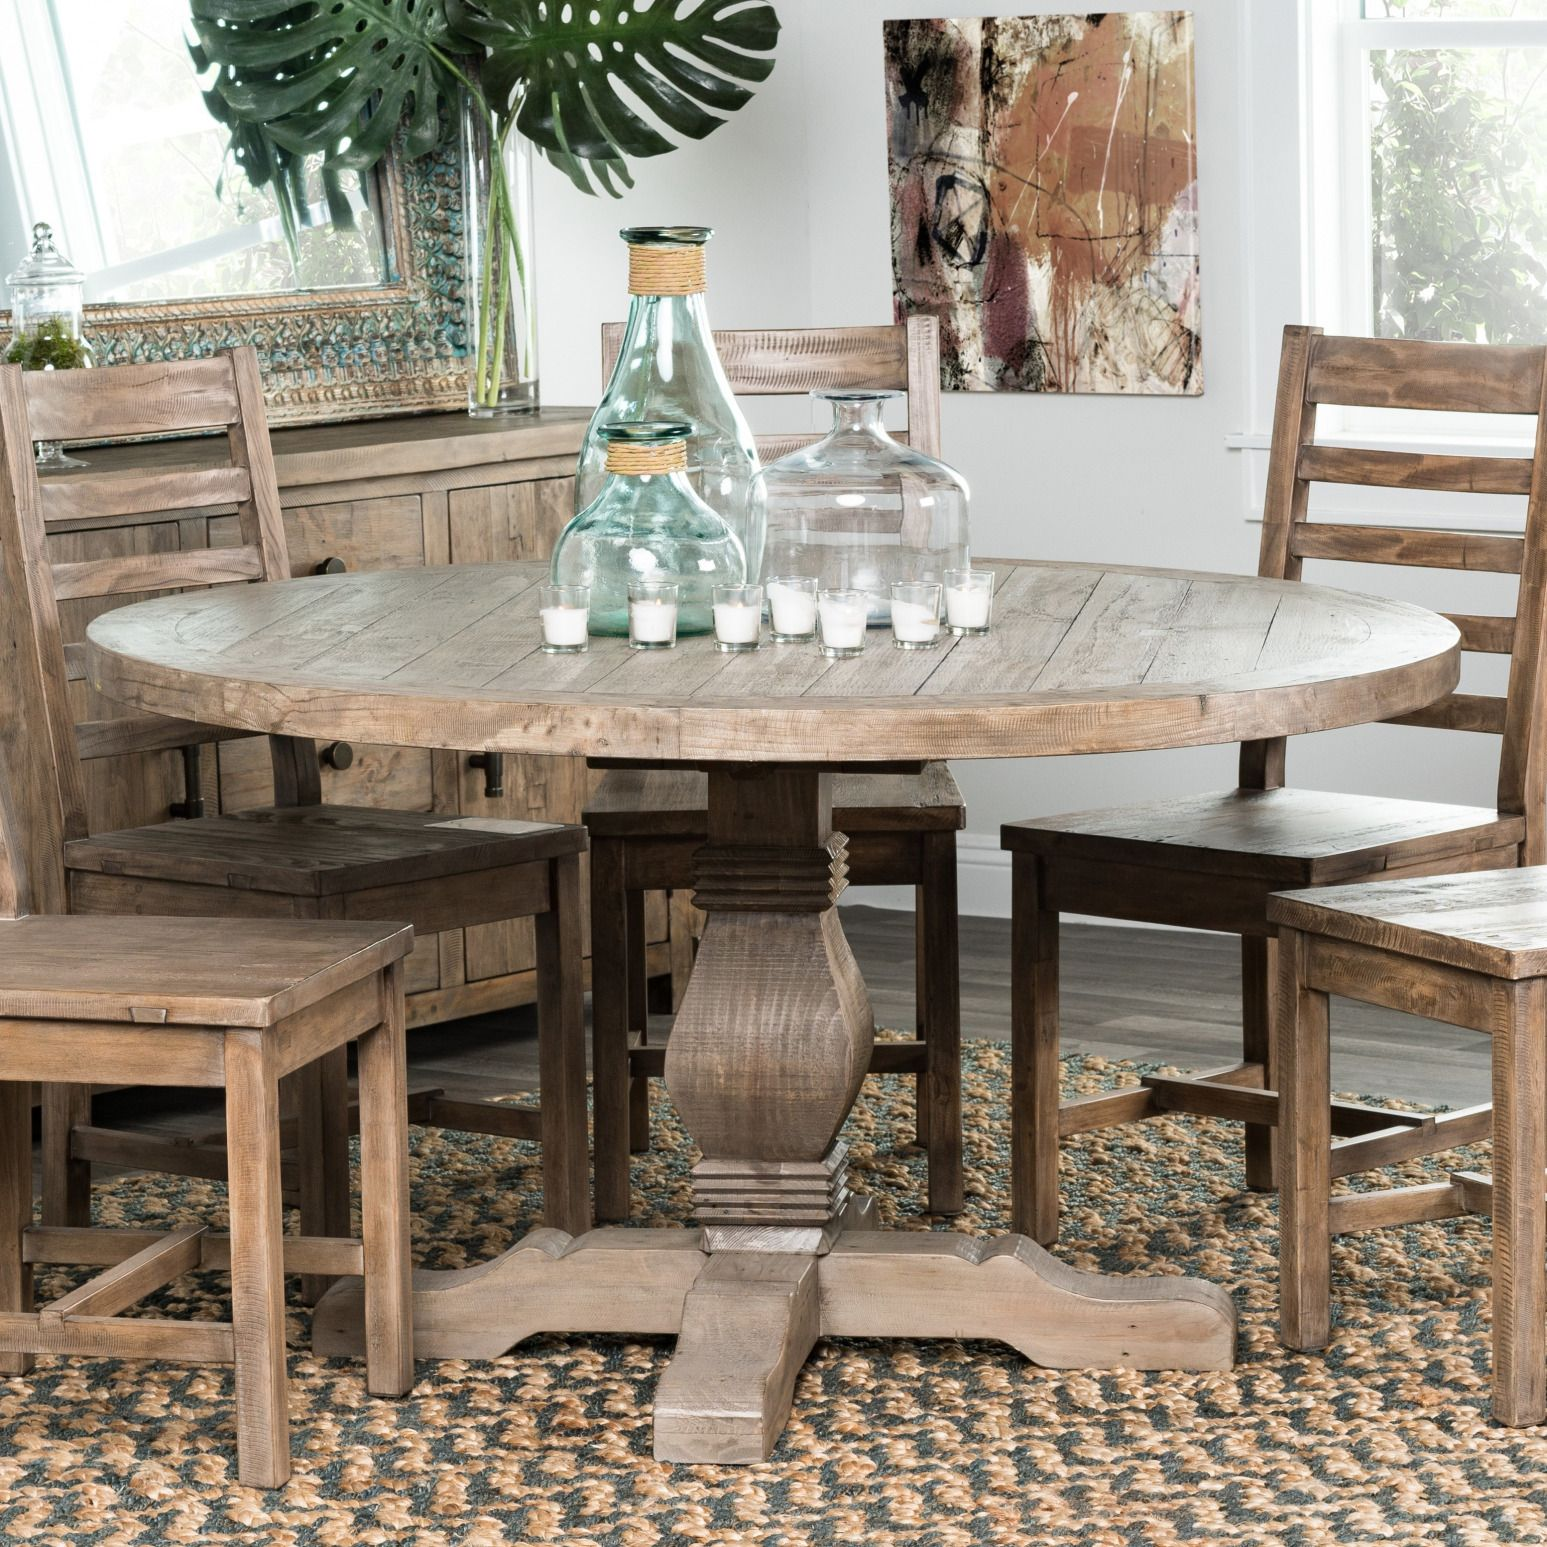 100 round table quincy ca  best way to paint furniture